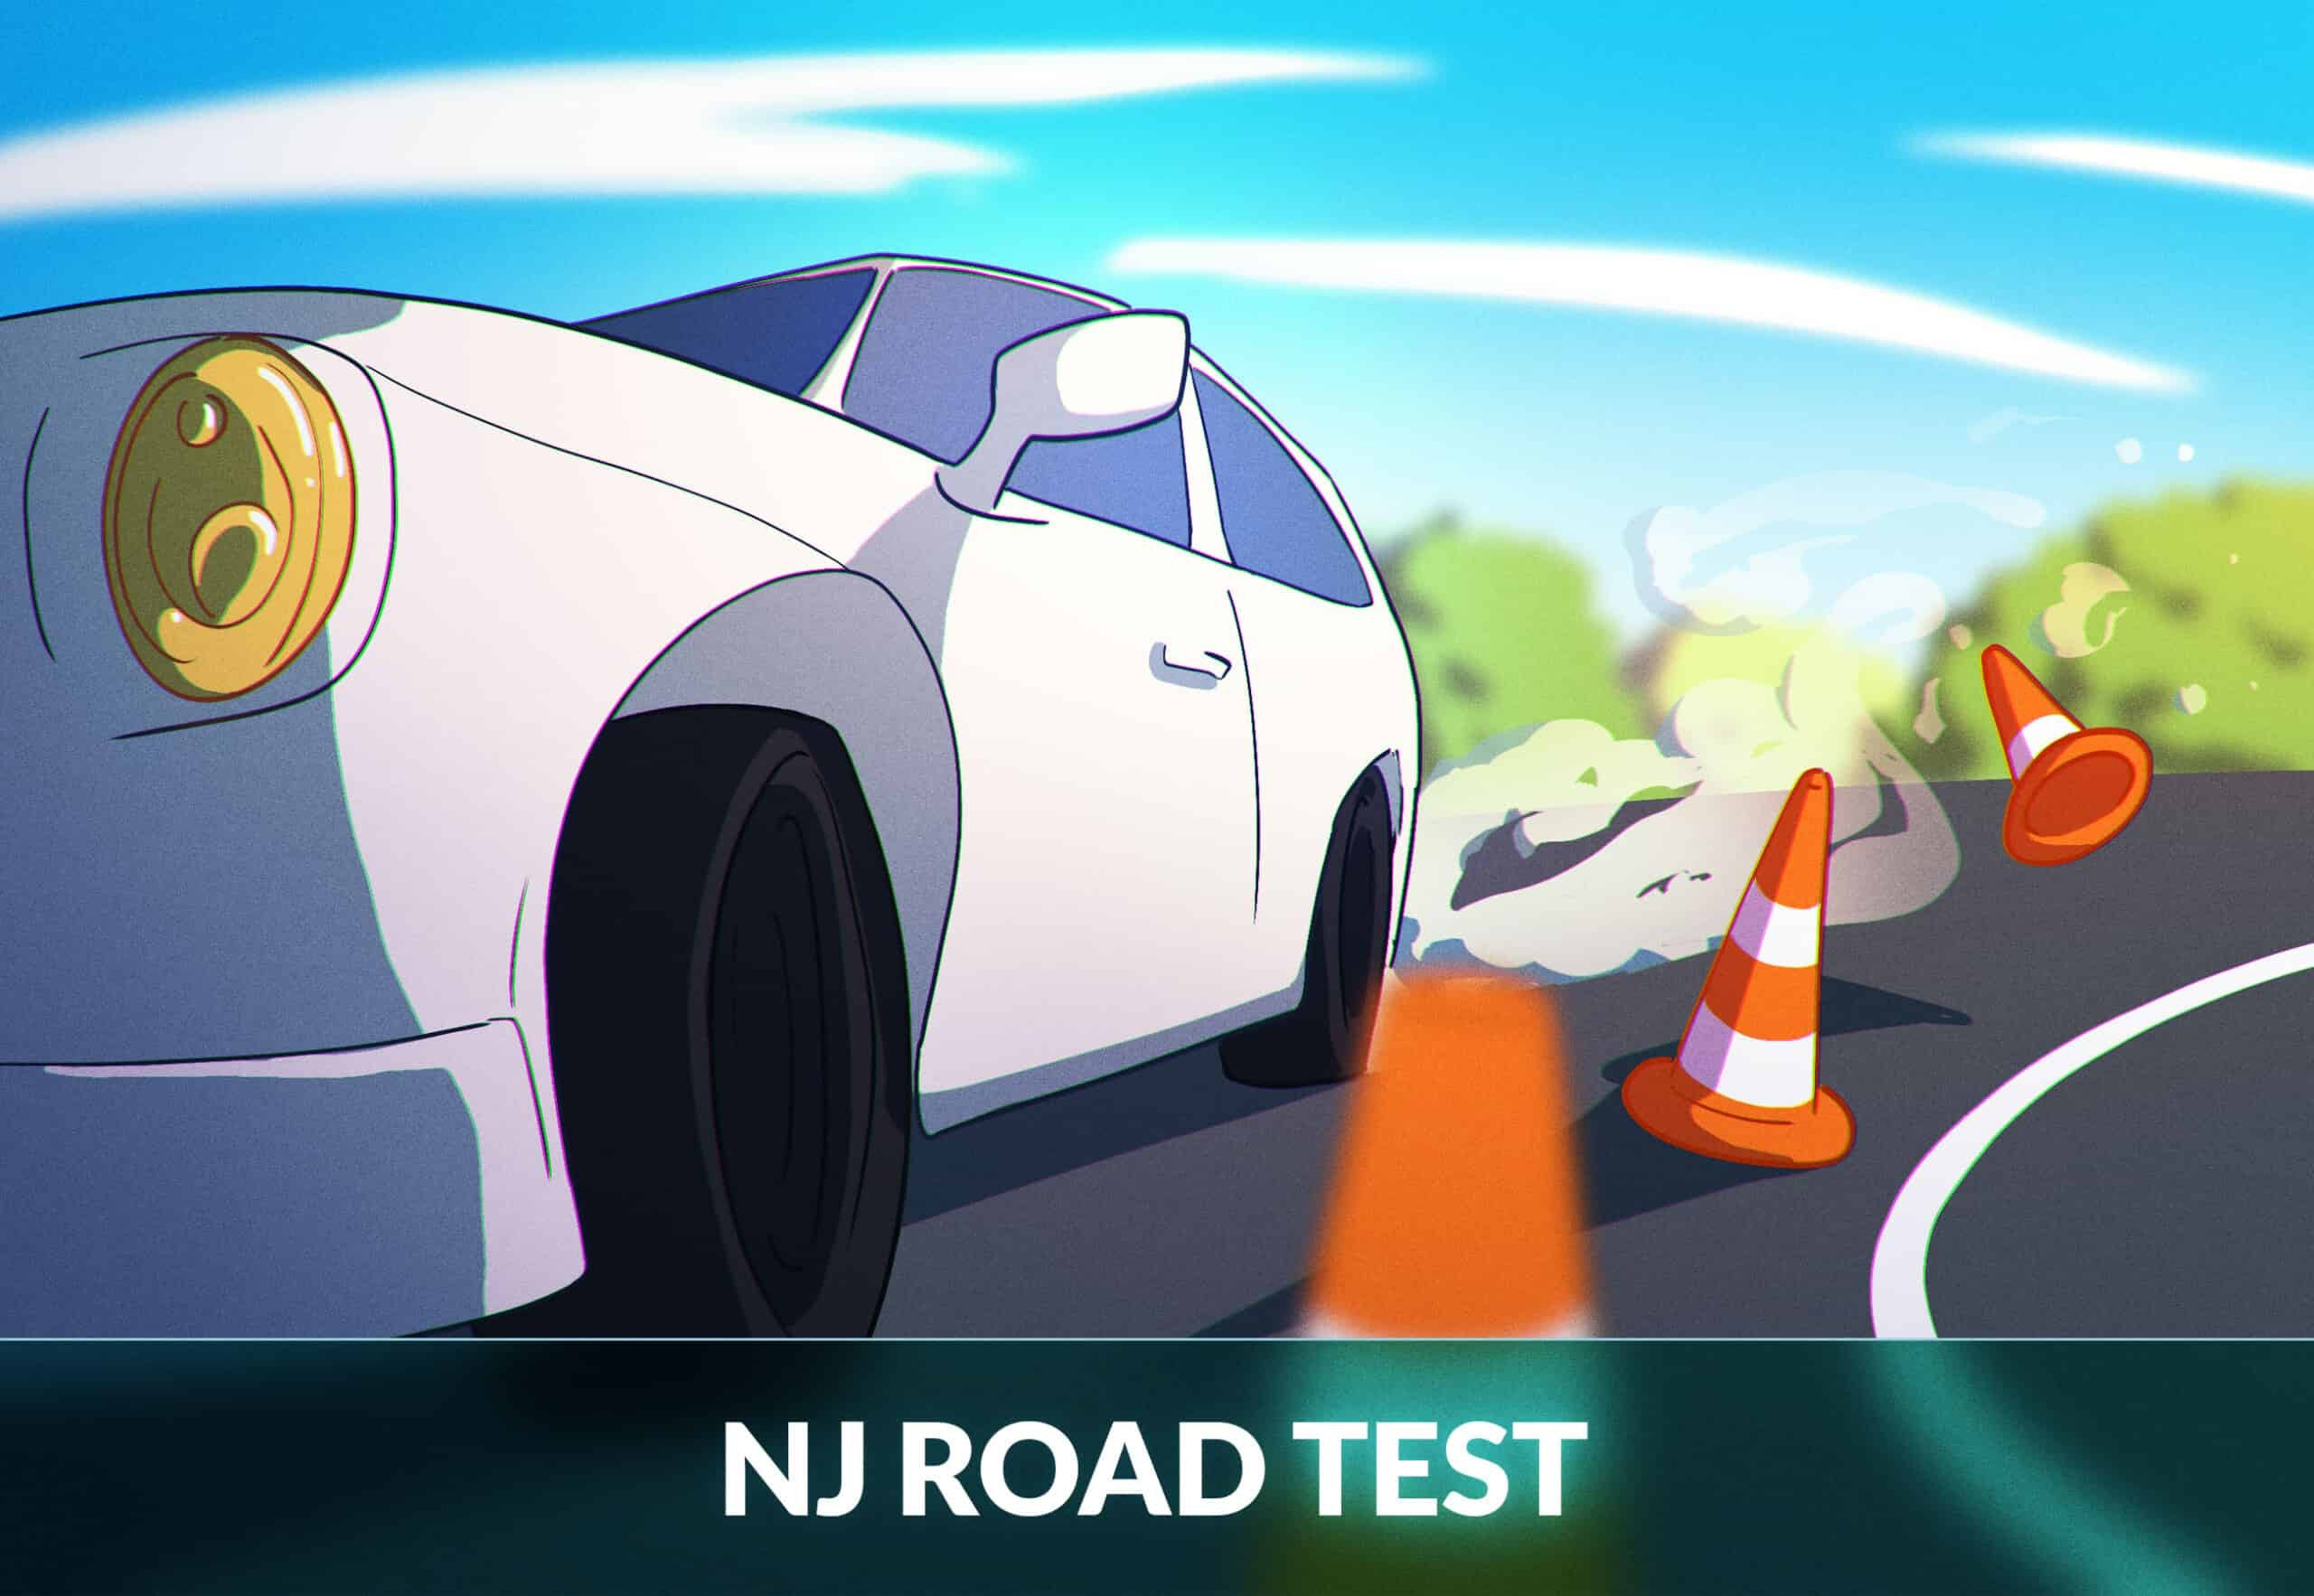 New Jersey Road Test